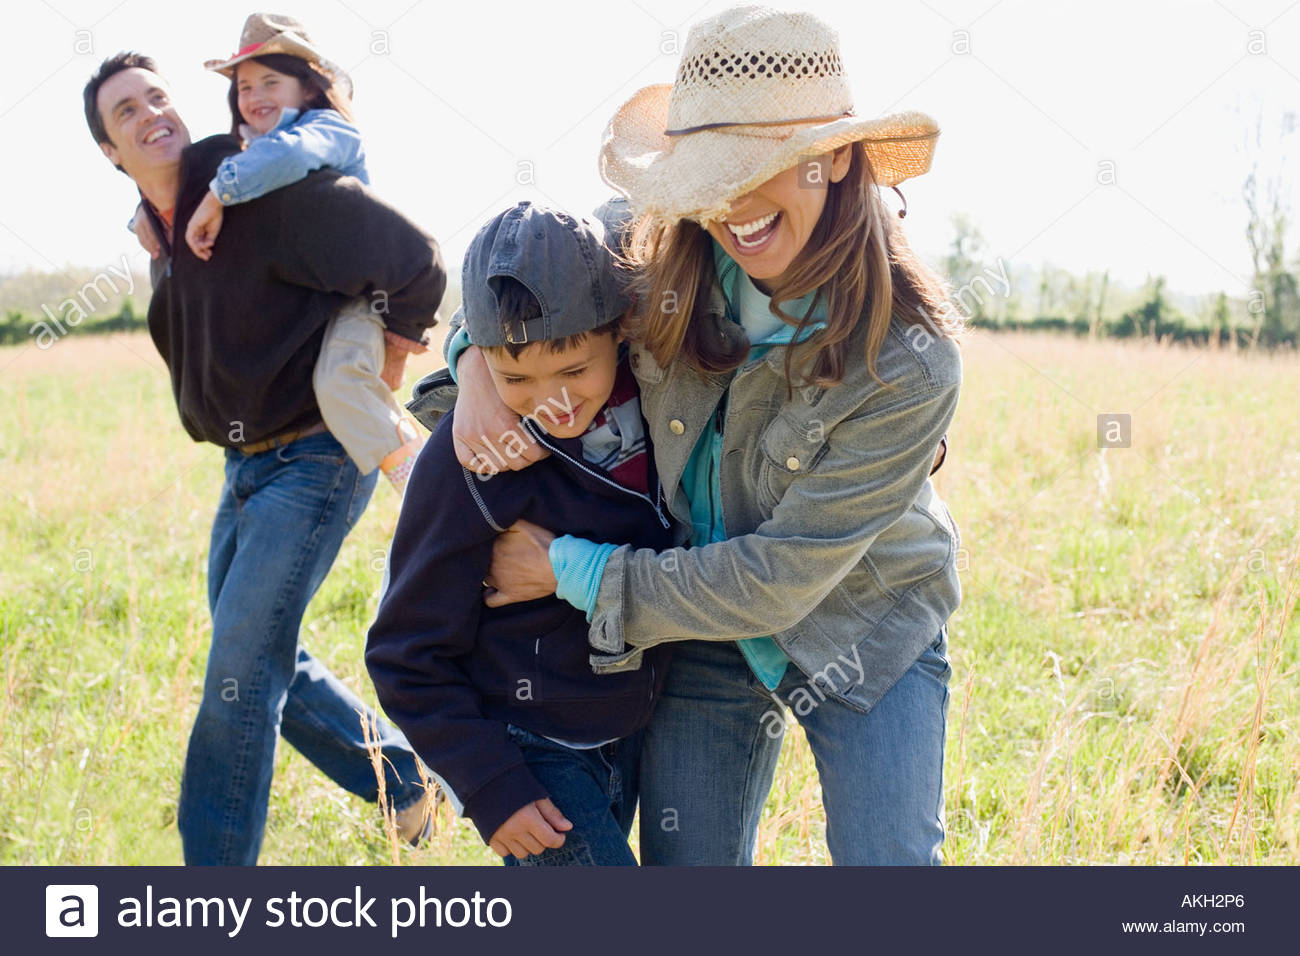 Family playing on field - Stock Image